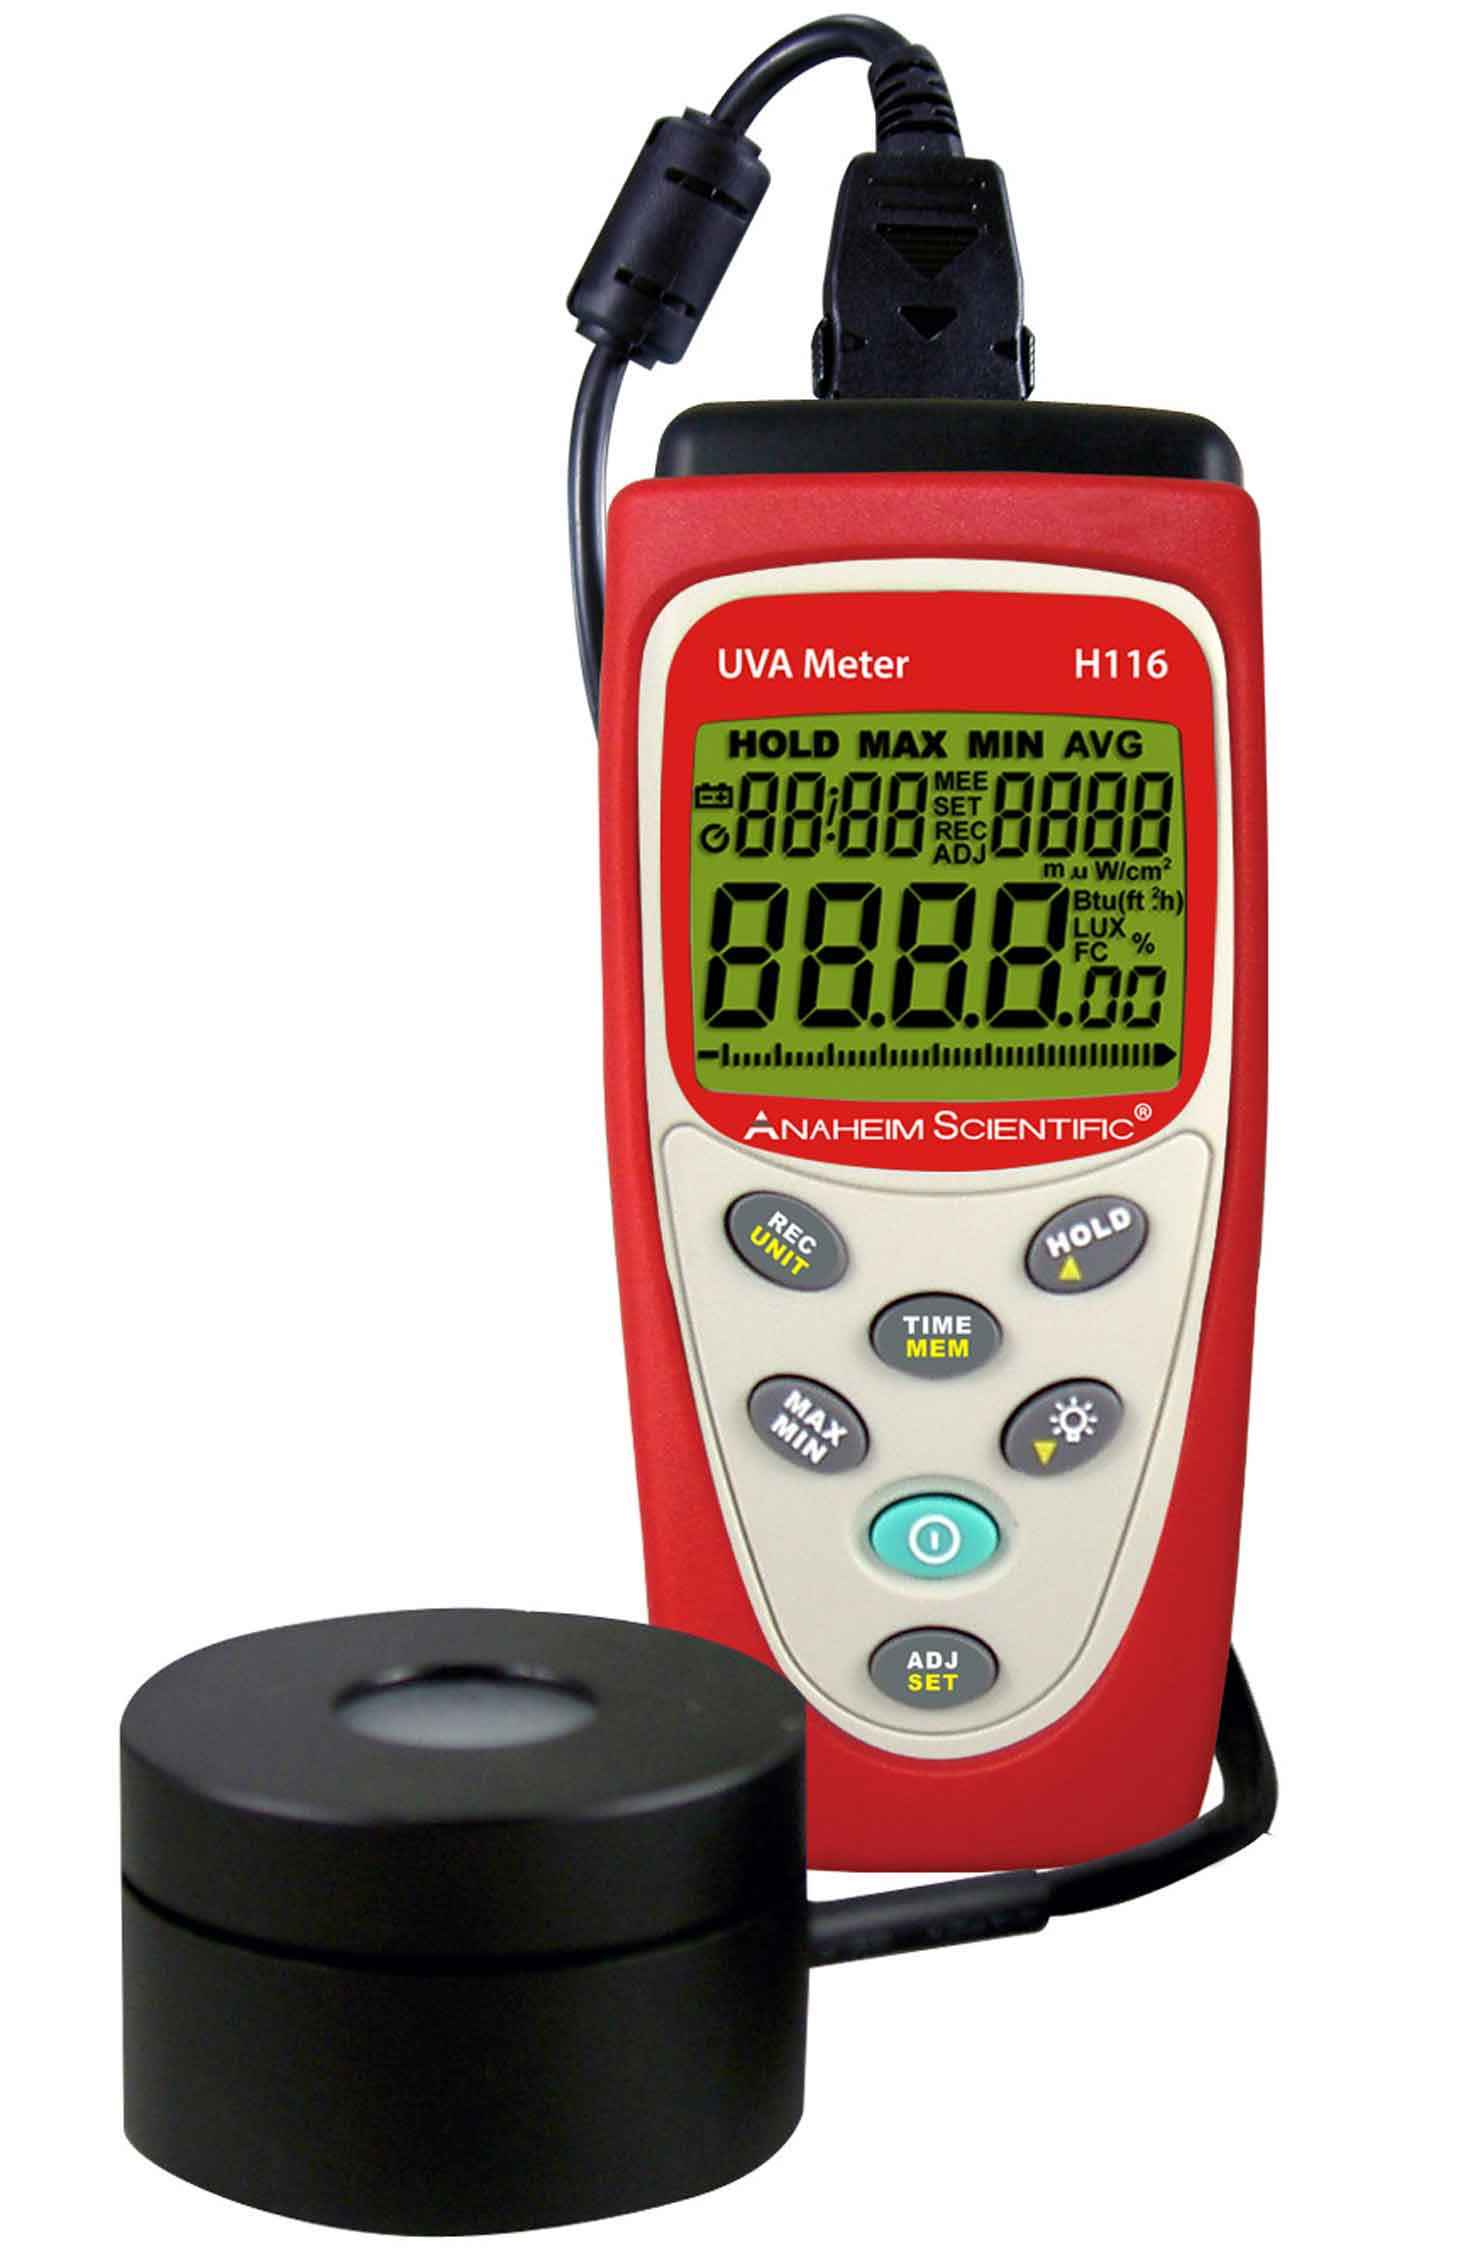 Global Specialties H116 UVA Meter Photo